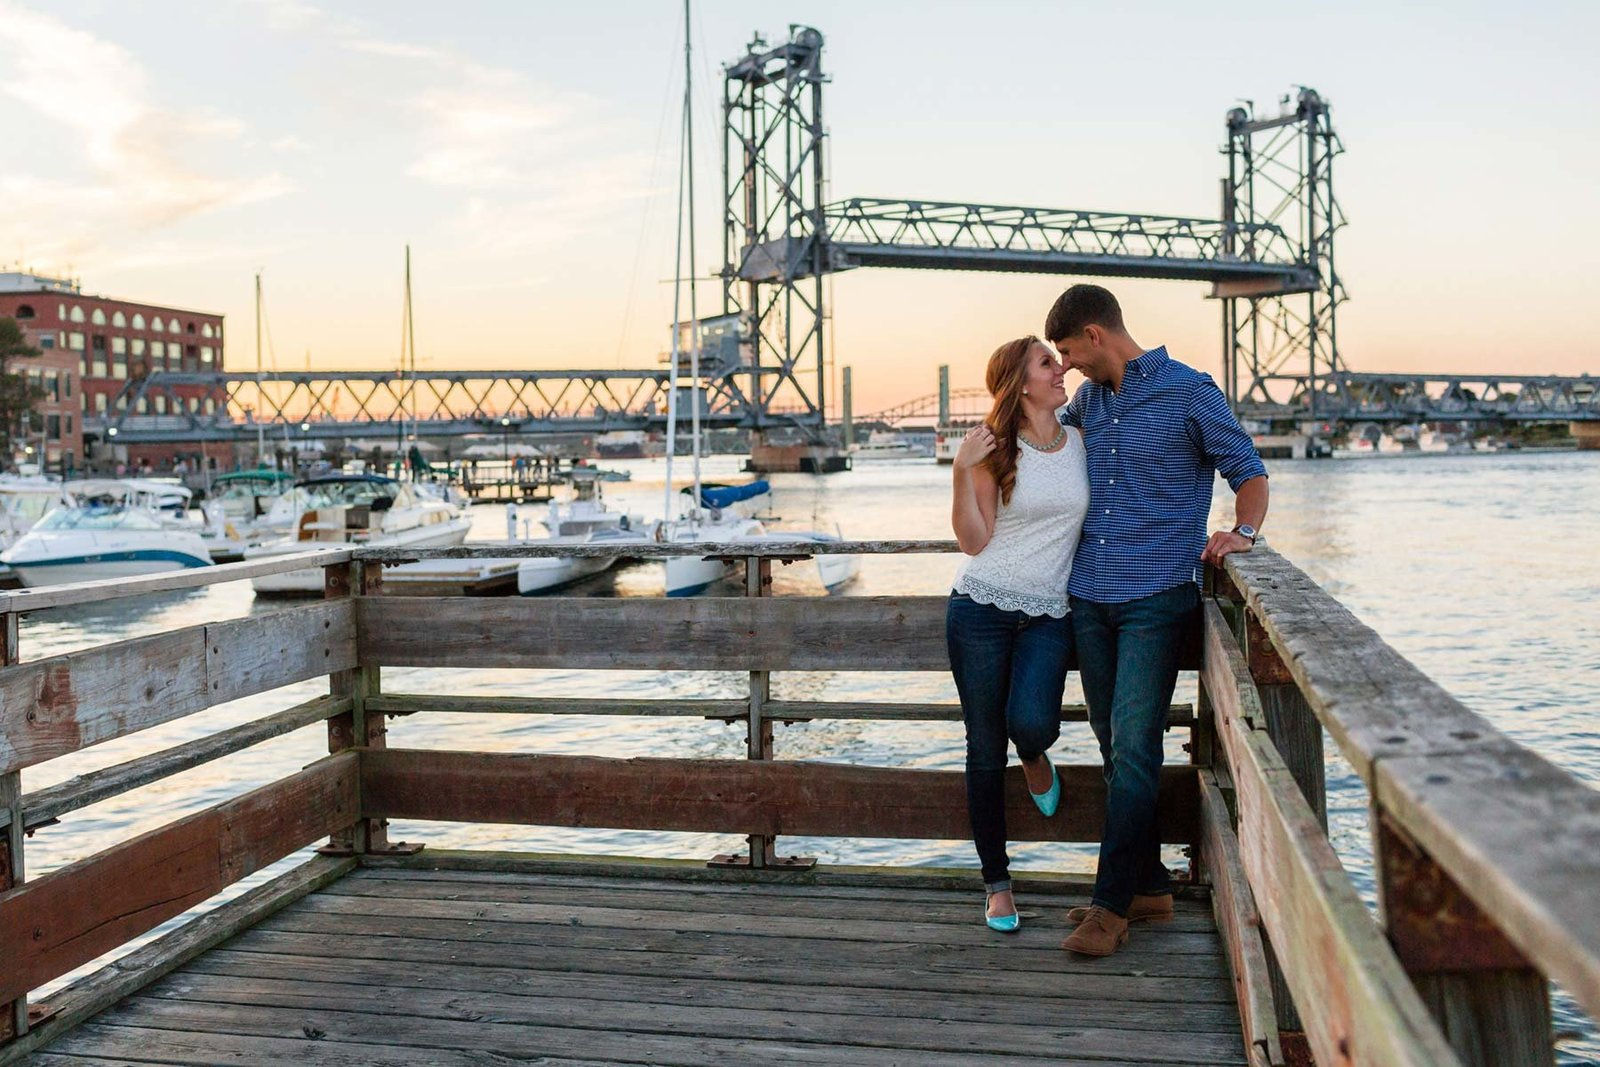 Portsmouth New Hampshire Engagement Session Dock Water Bridge Image